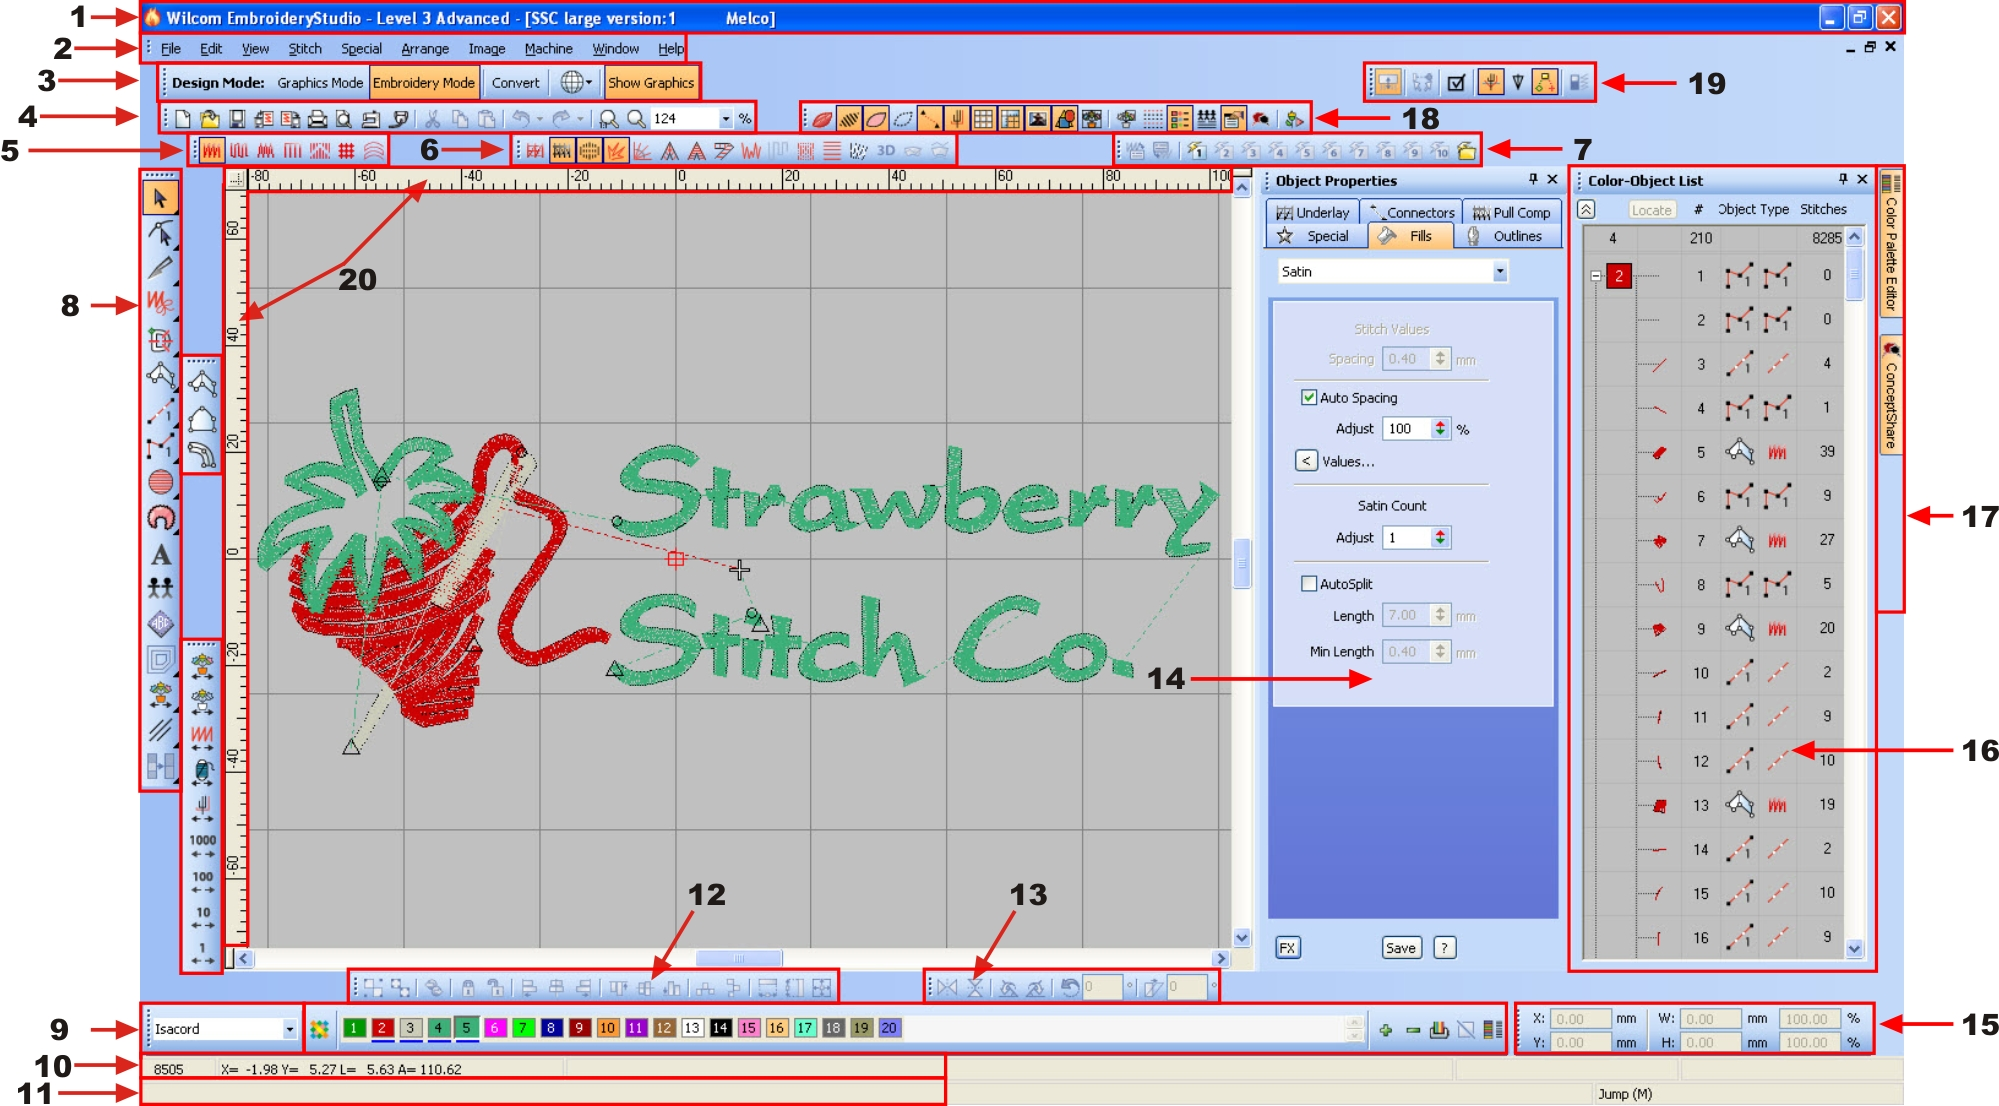 wilcom es 65 designer embroidery software free download